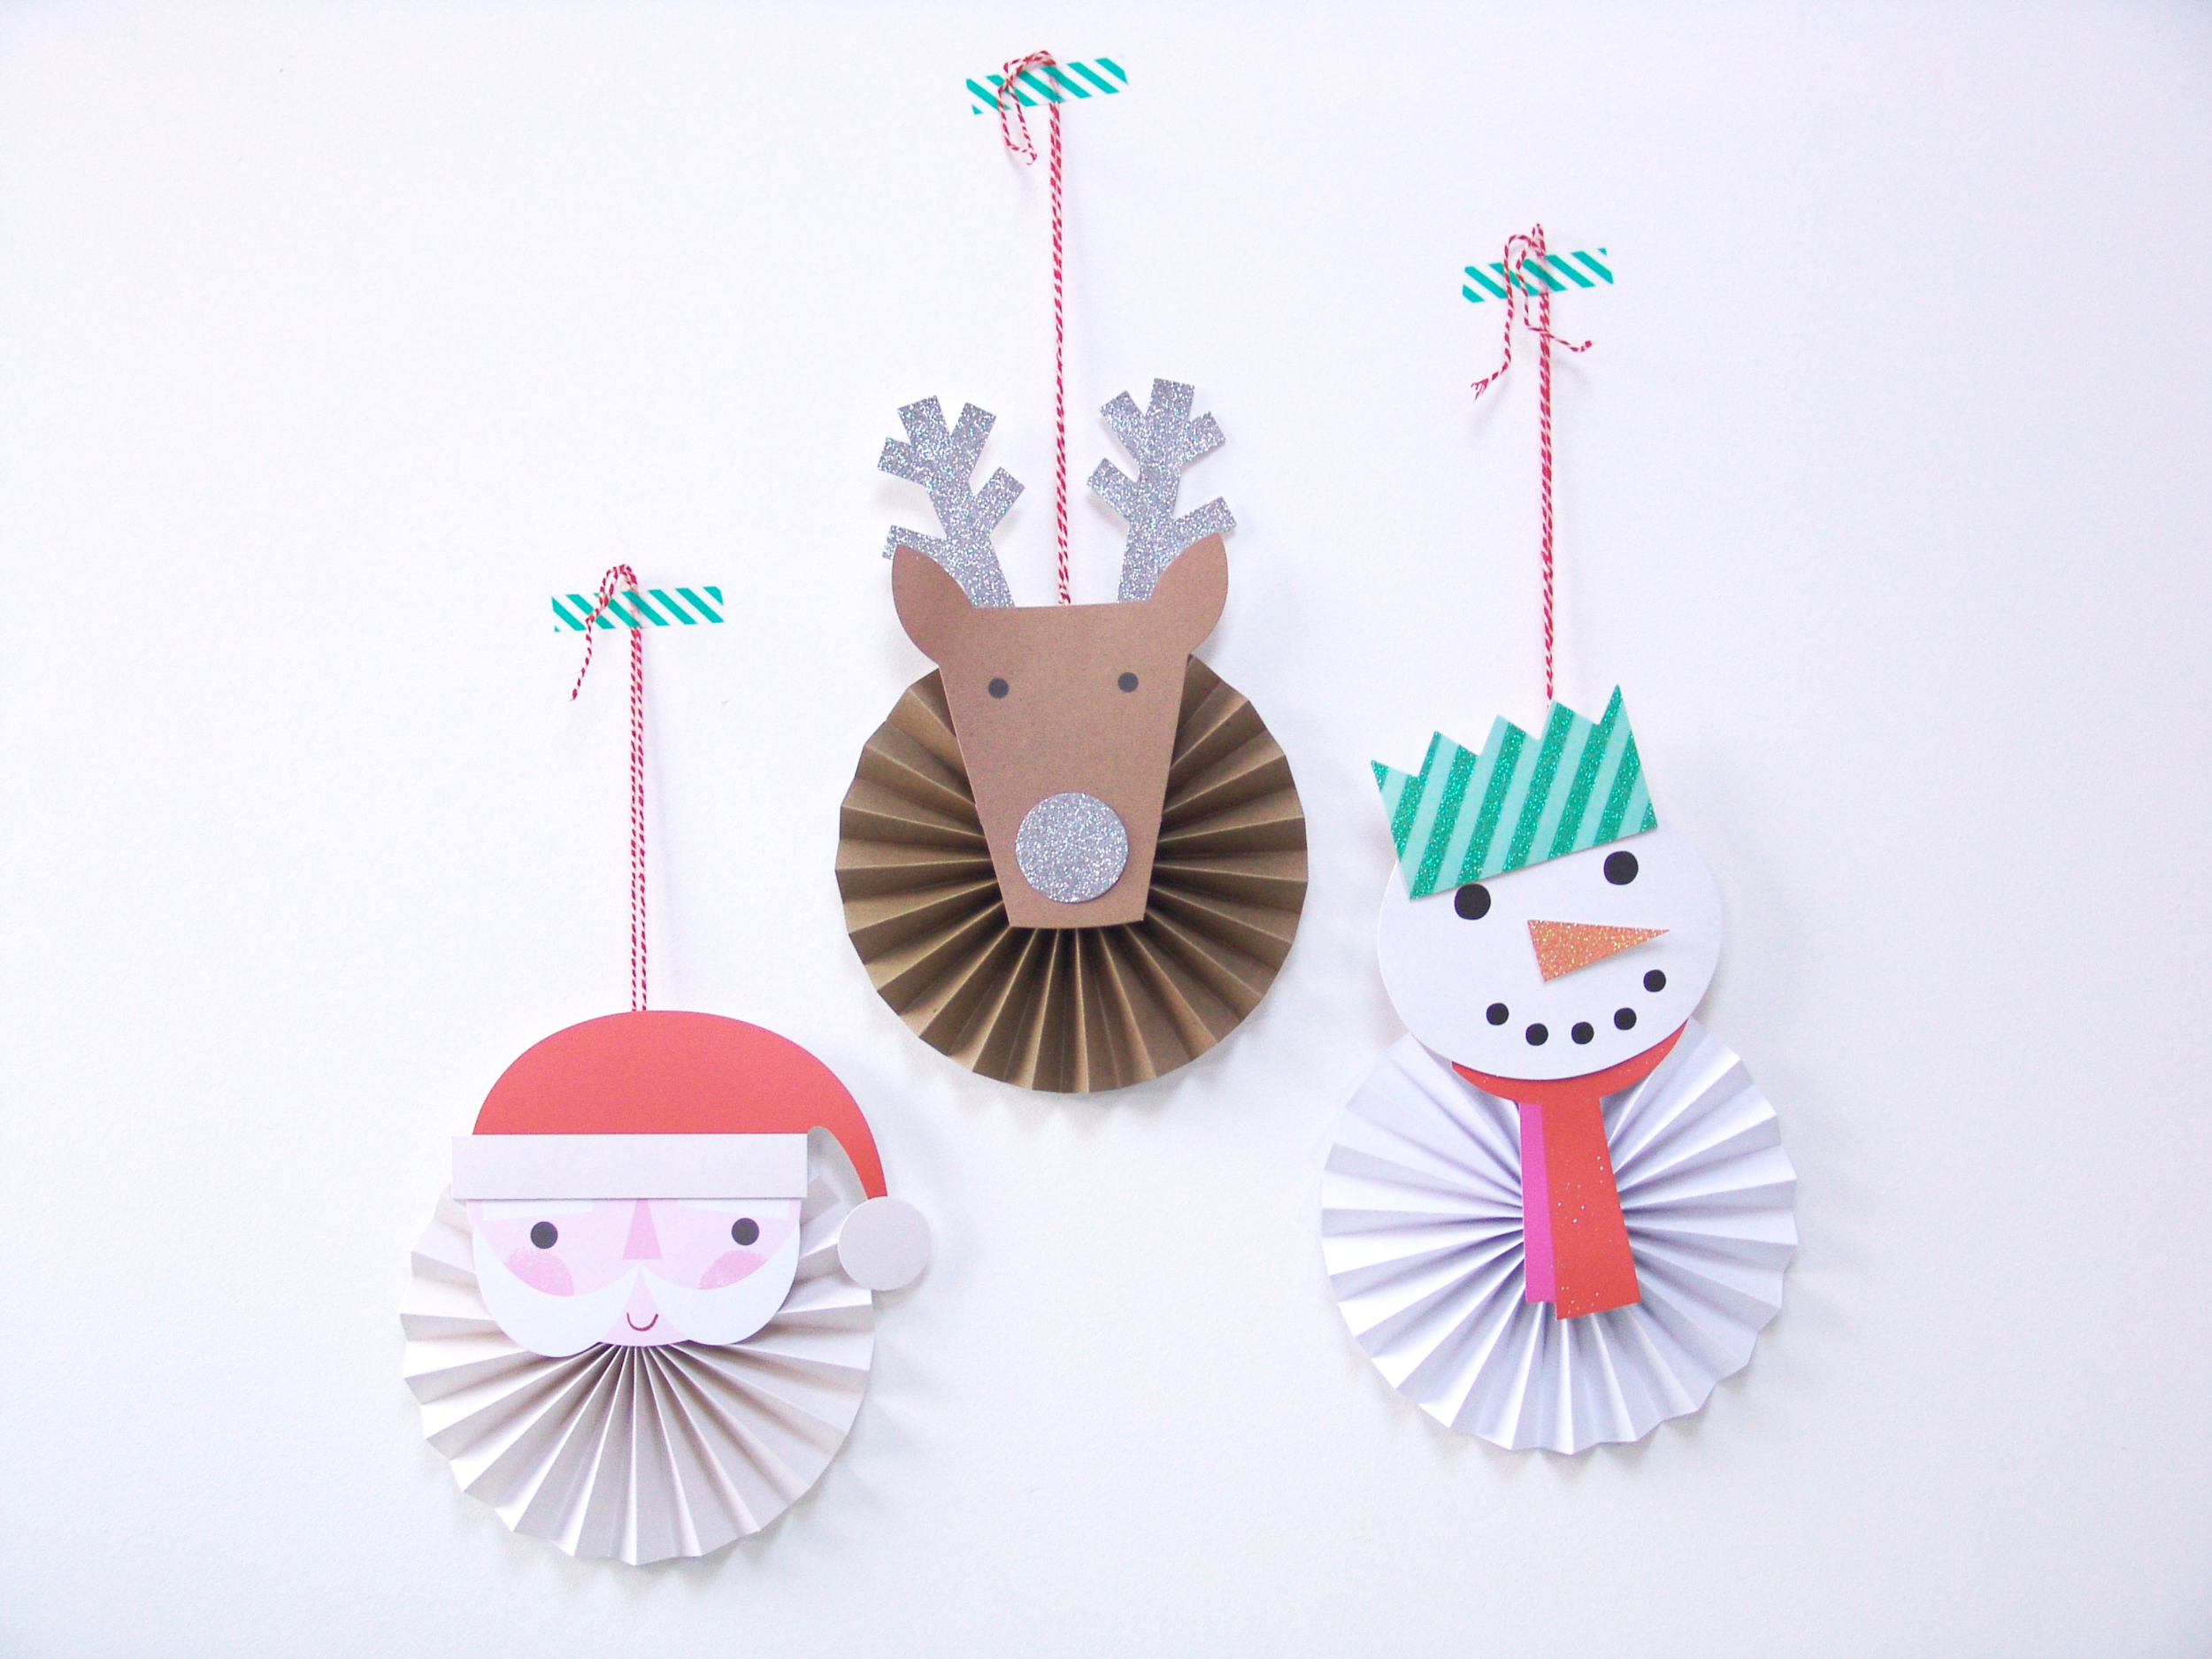 Kit suspension deco sapin de noel en papier original - Deco noel papier ...